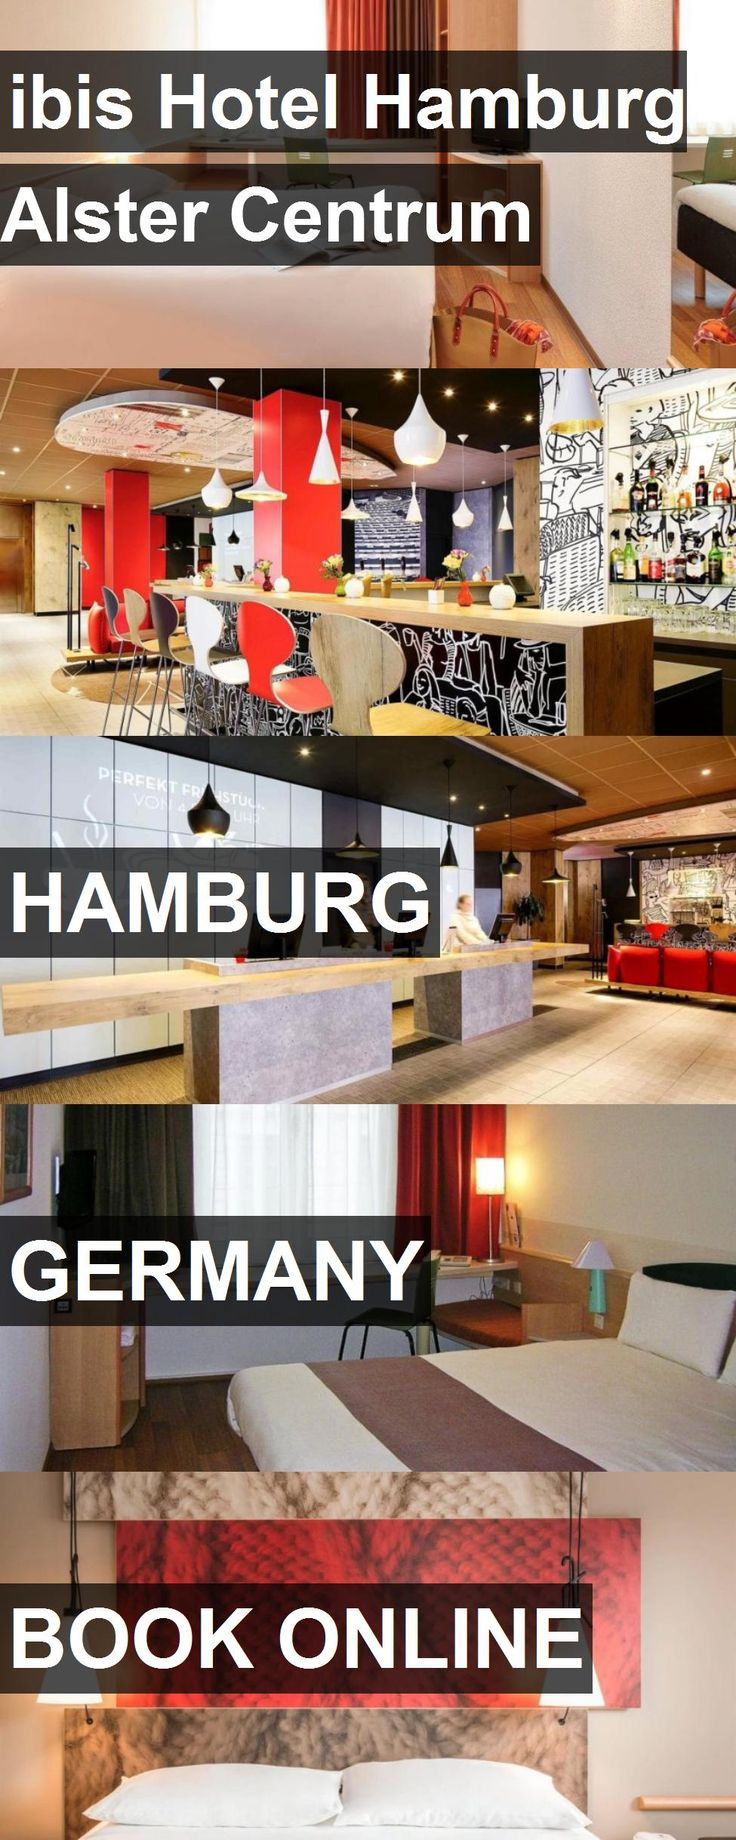 Hotel ibis Hotel Hamburg Alster Centrum in Hamburg, Germany. For more information, photos, reviews and best prices please follow the link. #Germany #Hamburg #hotel #travel #vacation